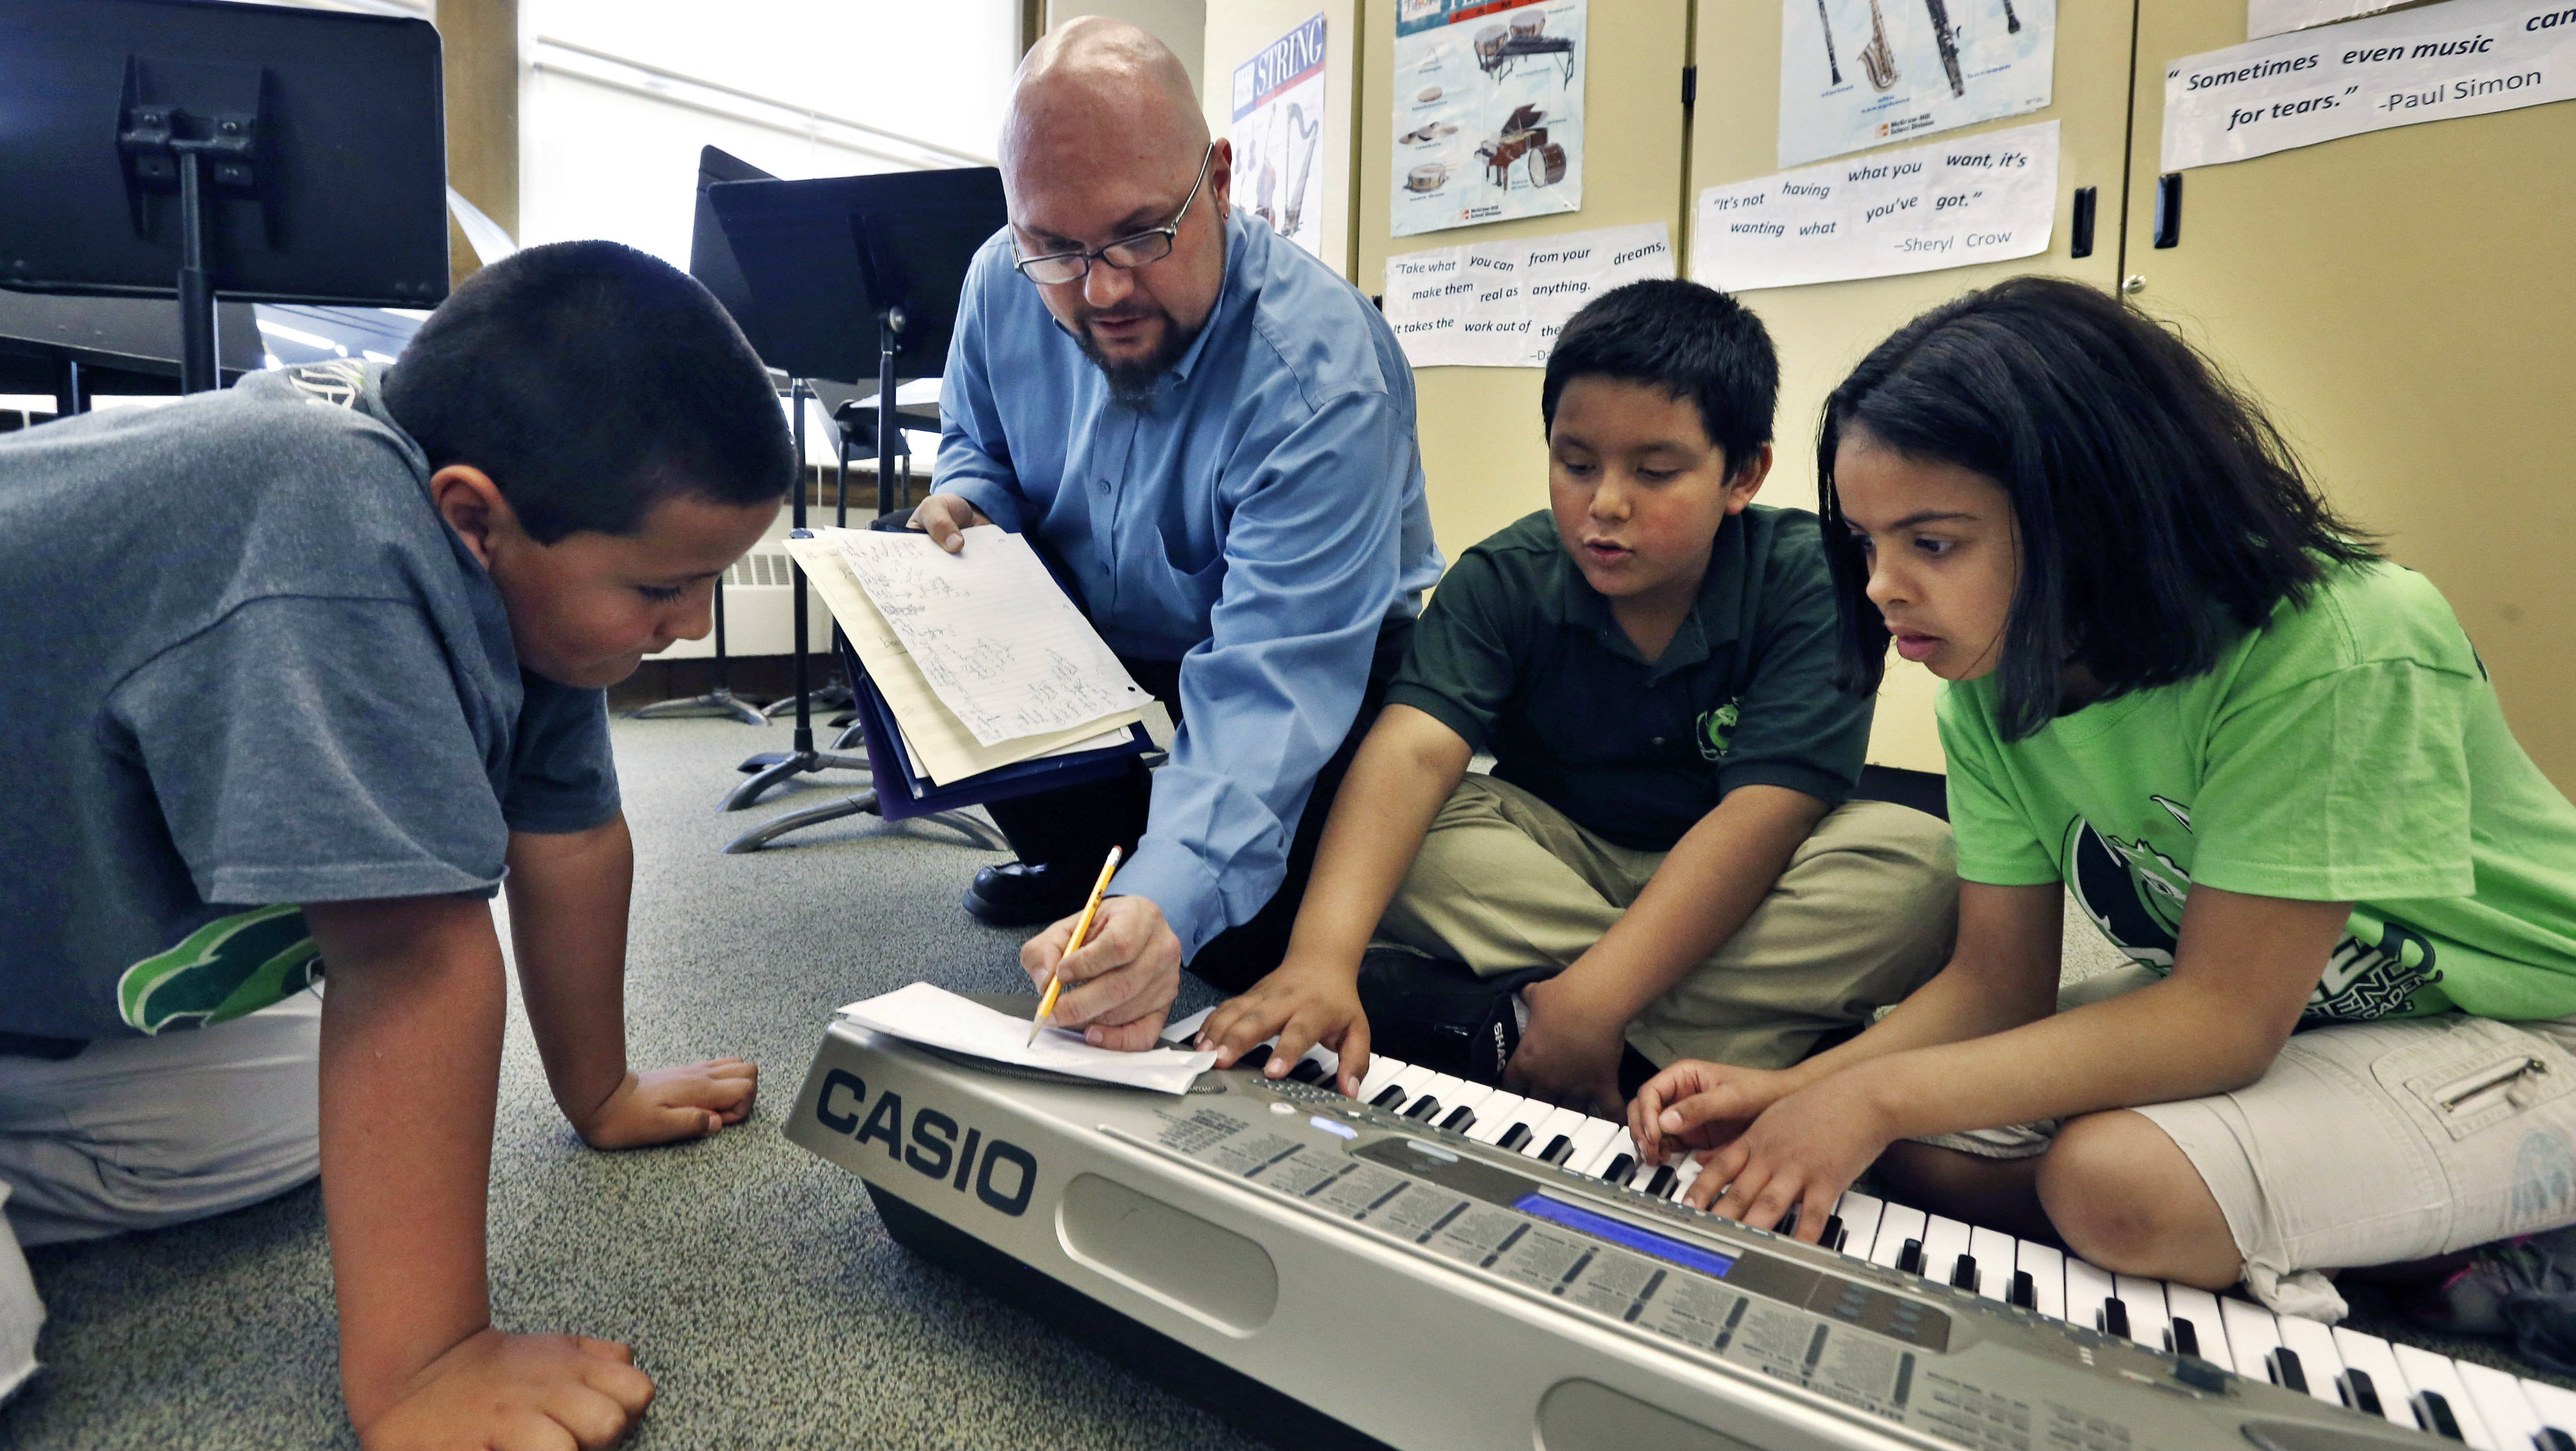 Music teacher teaching kids how to play the electric piano.